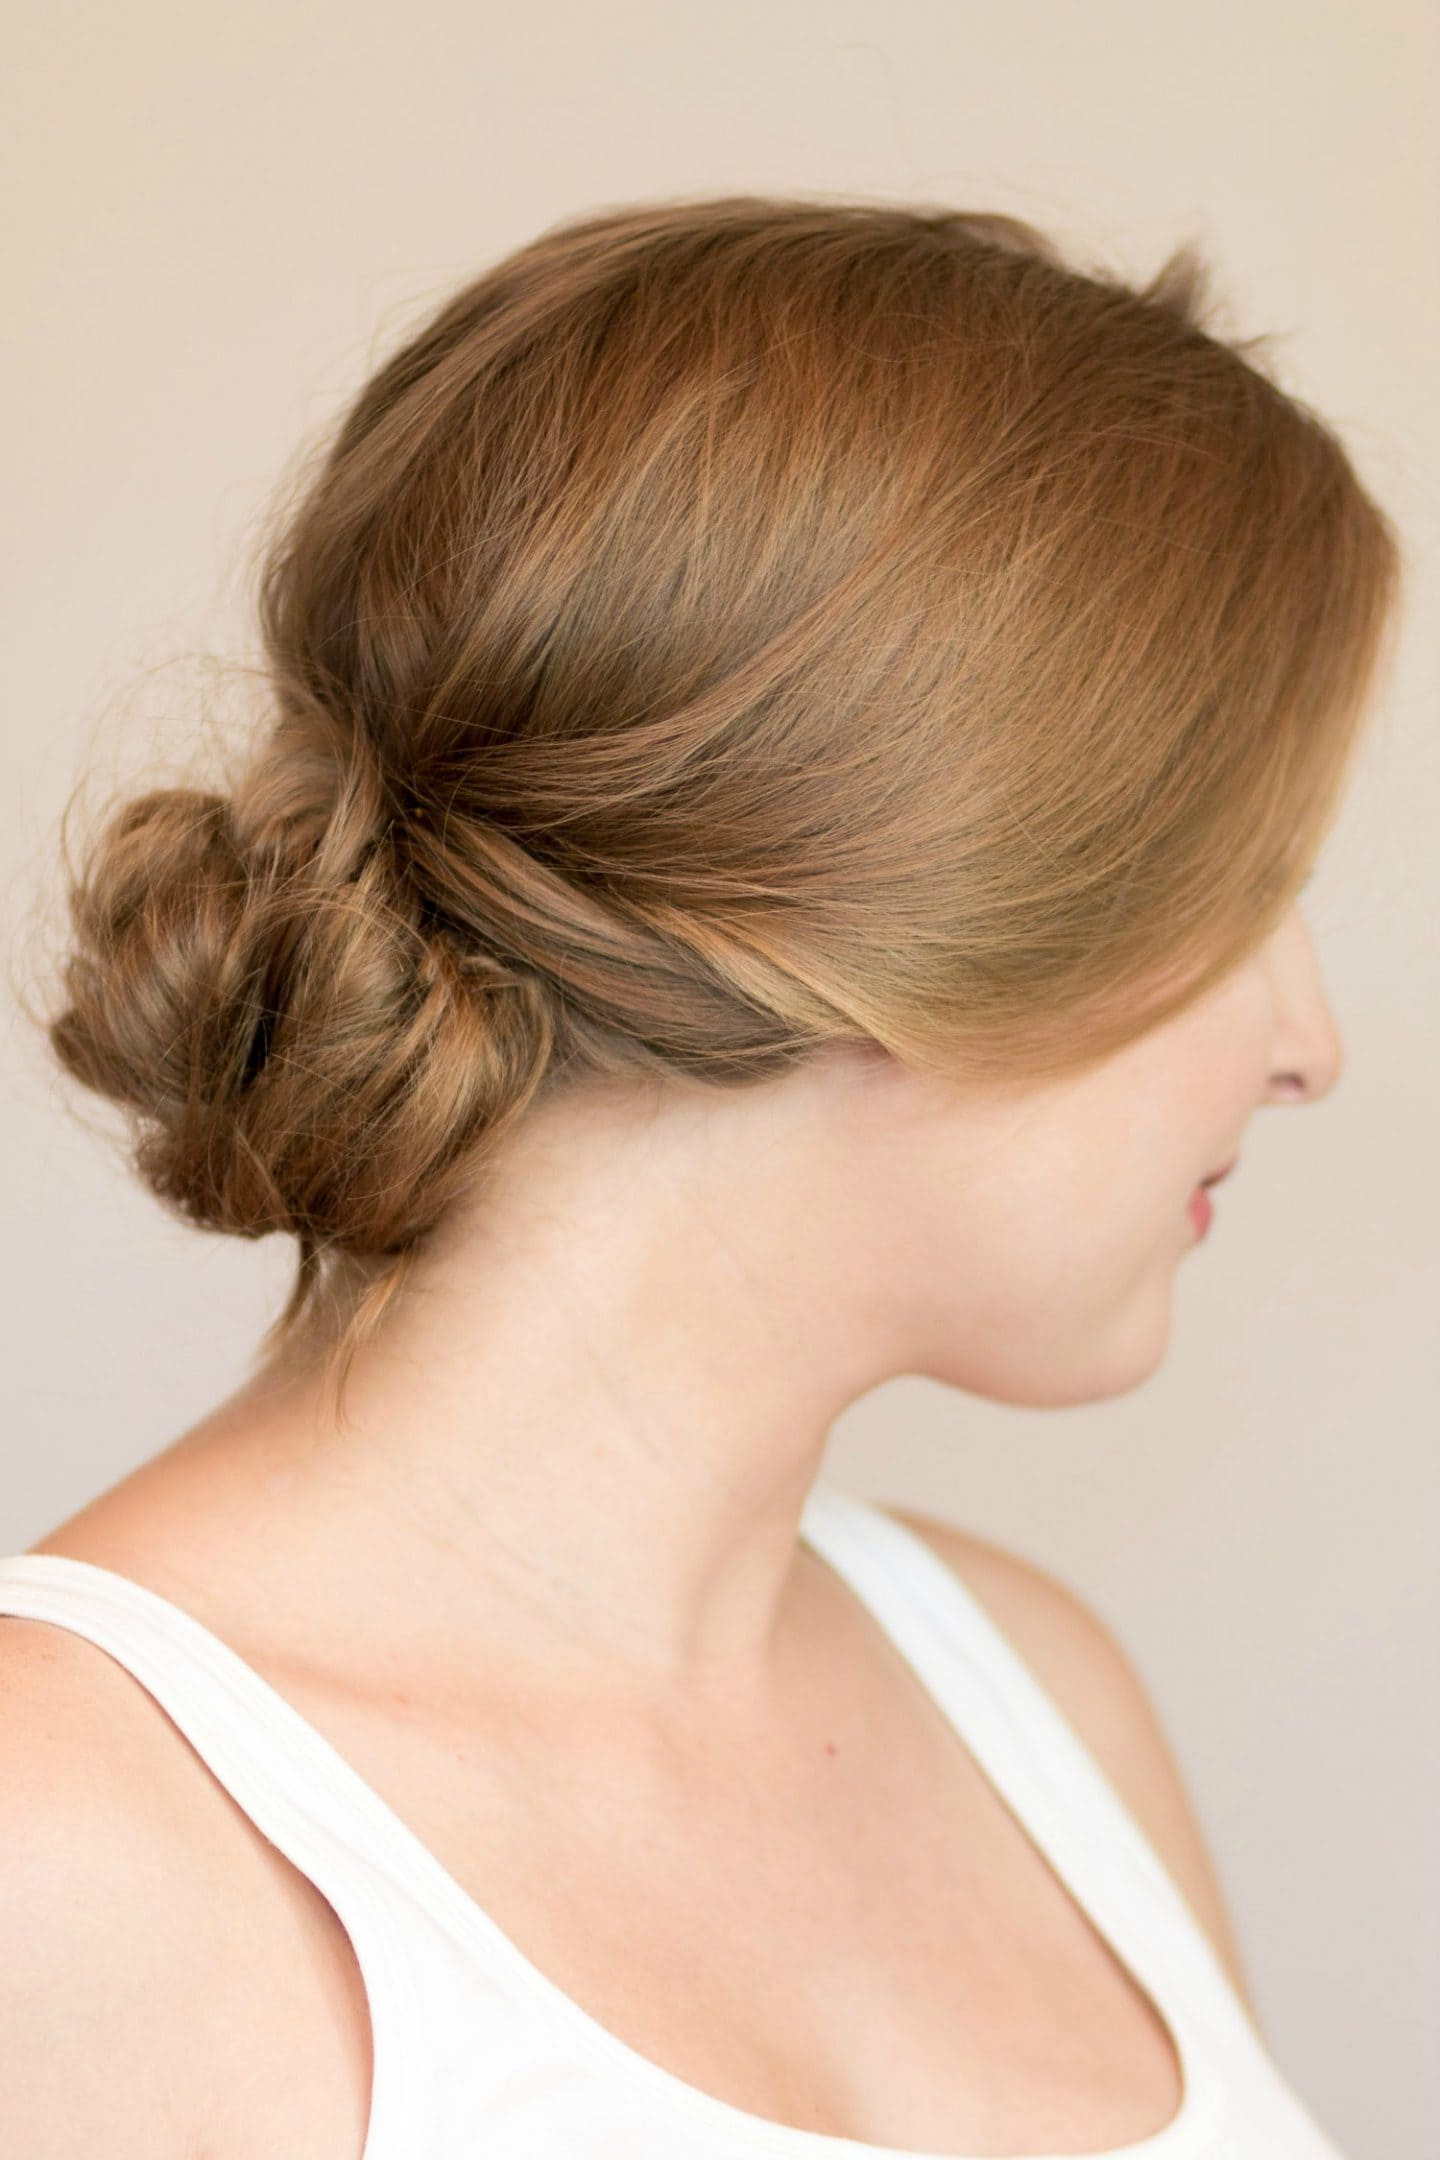 Easy messy braided bun hair tutorial | 4 Easy heatless hairstyles for long hair that don't require hair styling skills or braiding! Learn how to create a faux braided ponytail, messy faux fishtail braid, twisted half-up, and messy braided bun in these easy hair tutorial by Orlando, Florida beauty blogger Ashley Brooke Nicholas! #MyHCLook sponsored by Hair Cuttery | easy hairstyles, no-heat hairstyle, faux braids, faux braid tutorial, how to braid your hair, messy bun, fishtail braid, long dirty blonde hair